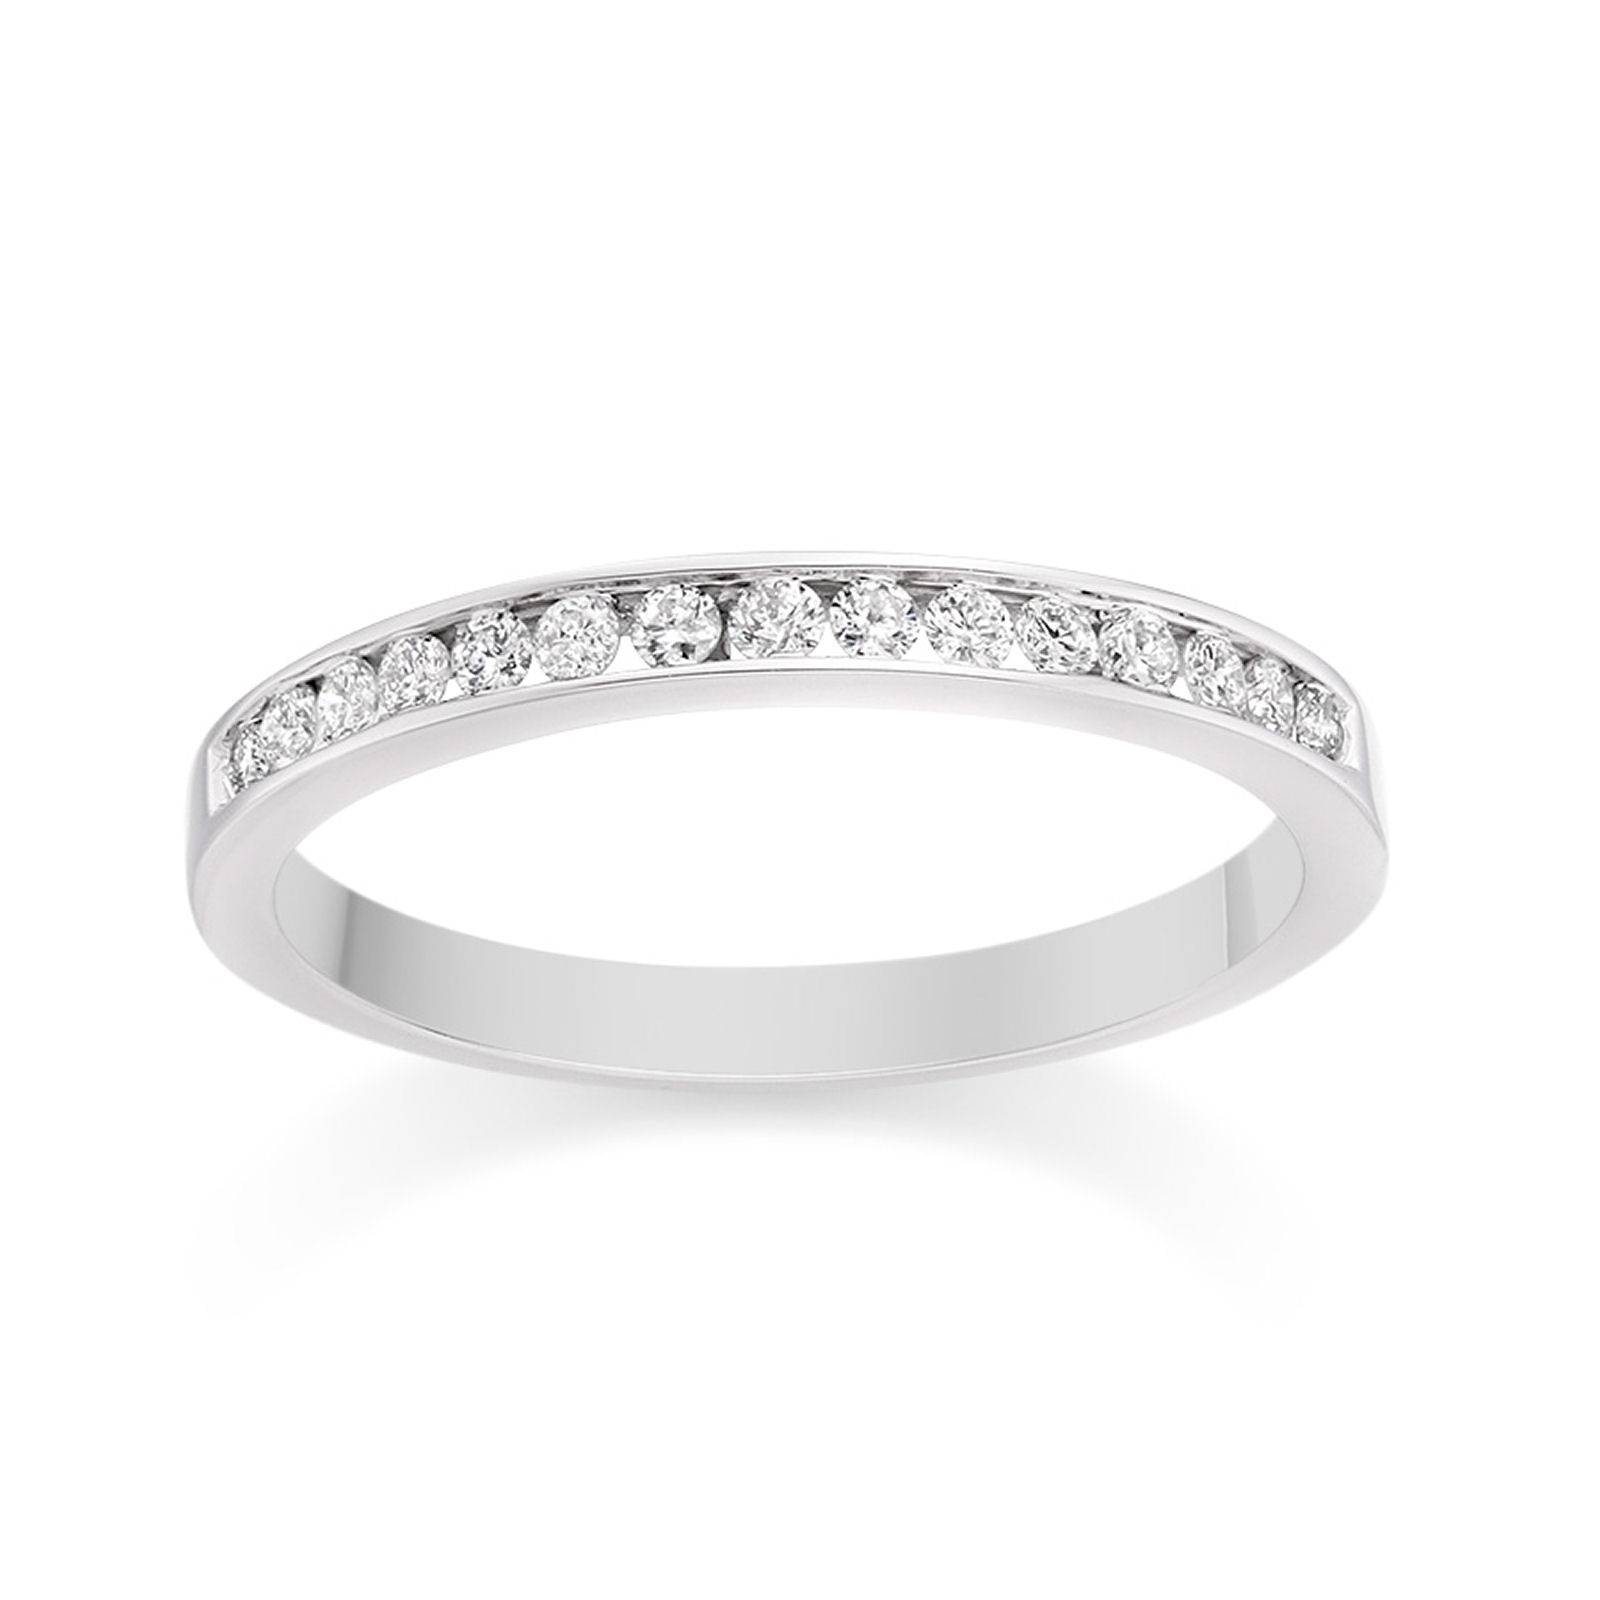 Channel Set Diamond Wedding Ring In Platinum Wedding Dress From Intended For Platinum Diamond Wedding Rings Sets (View 5 of 15)